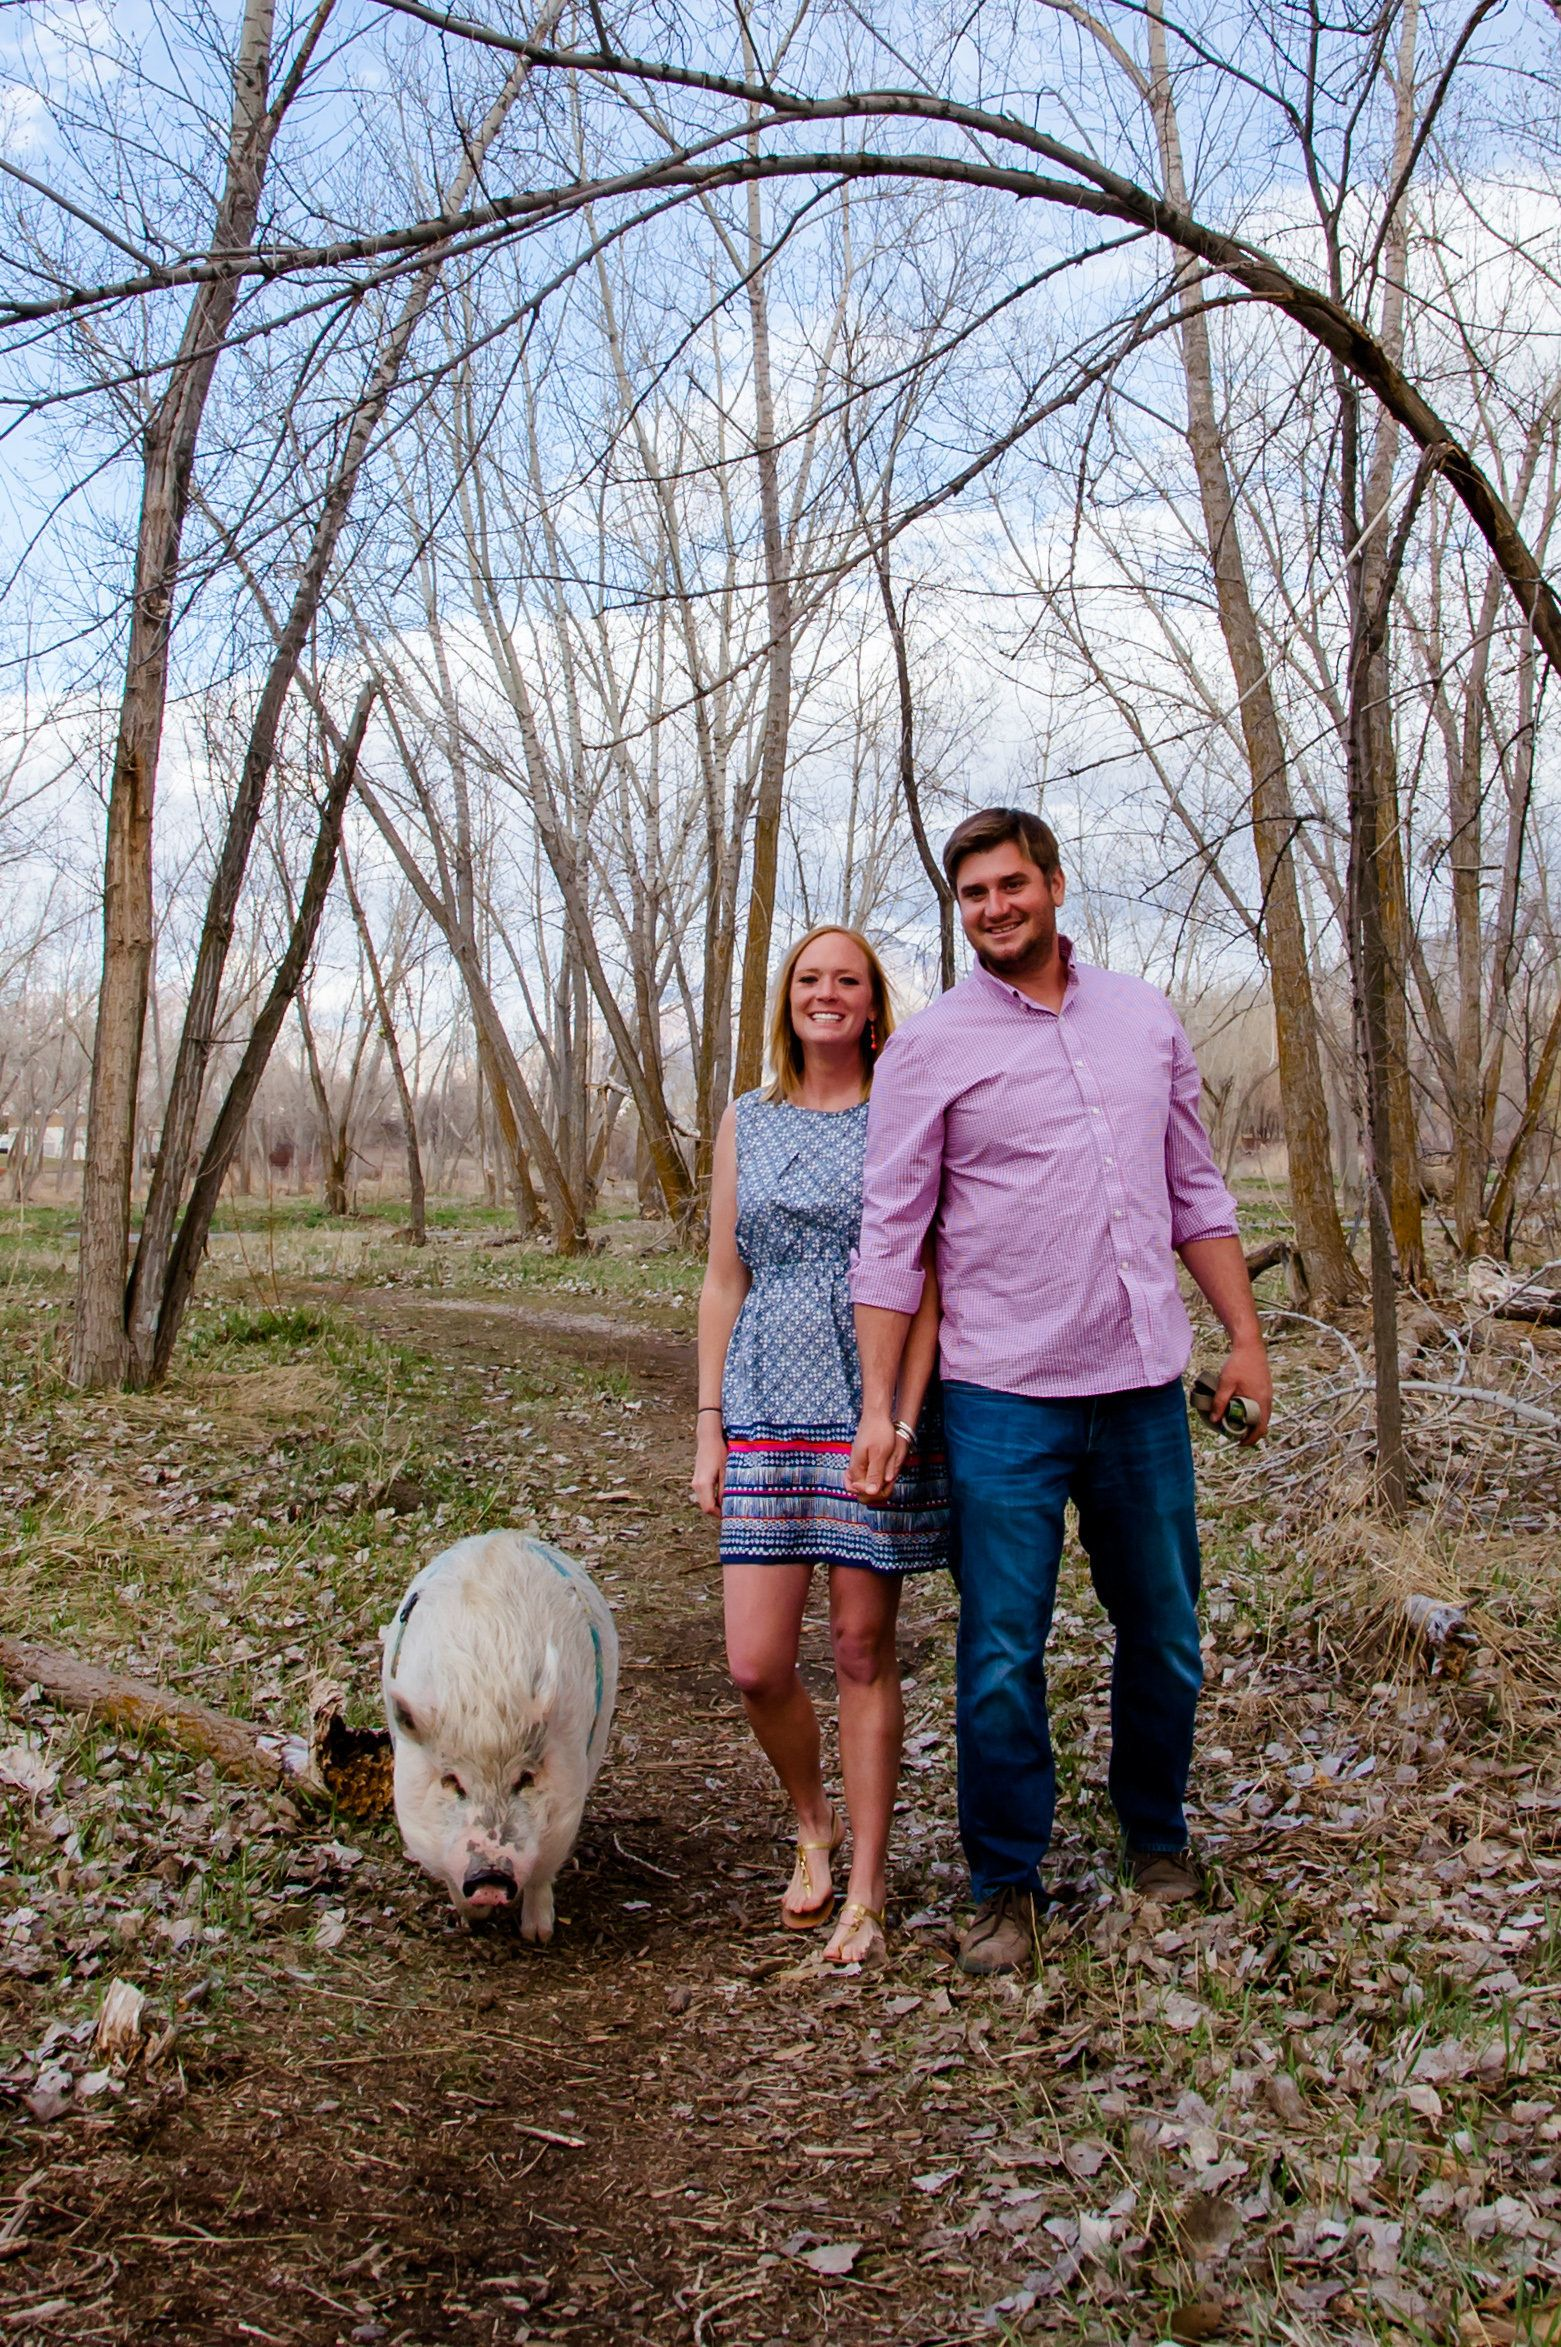 Kristin Hartness and Jay Yontz featured theirpet pig in their engagementphotos.